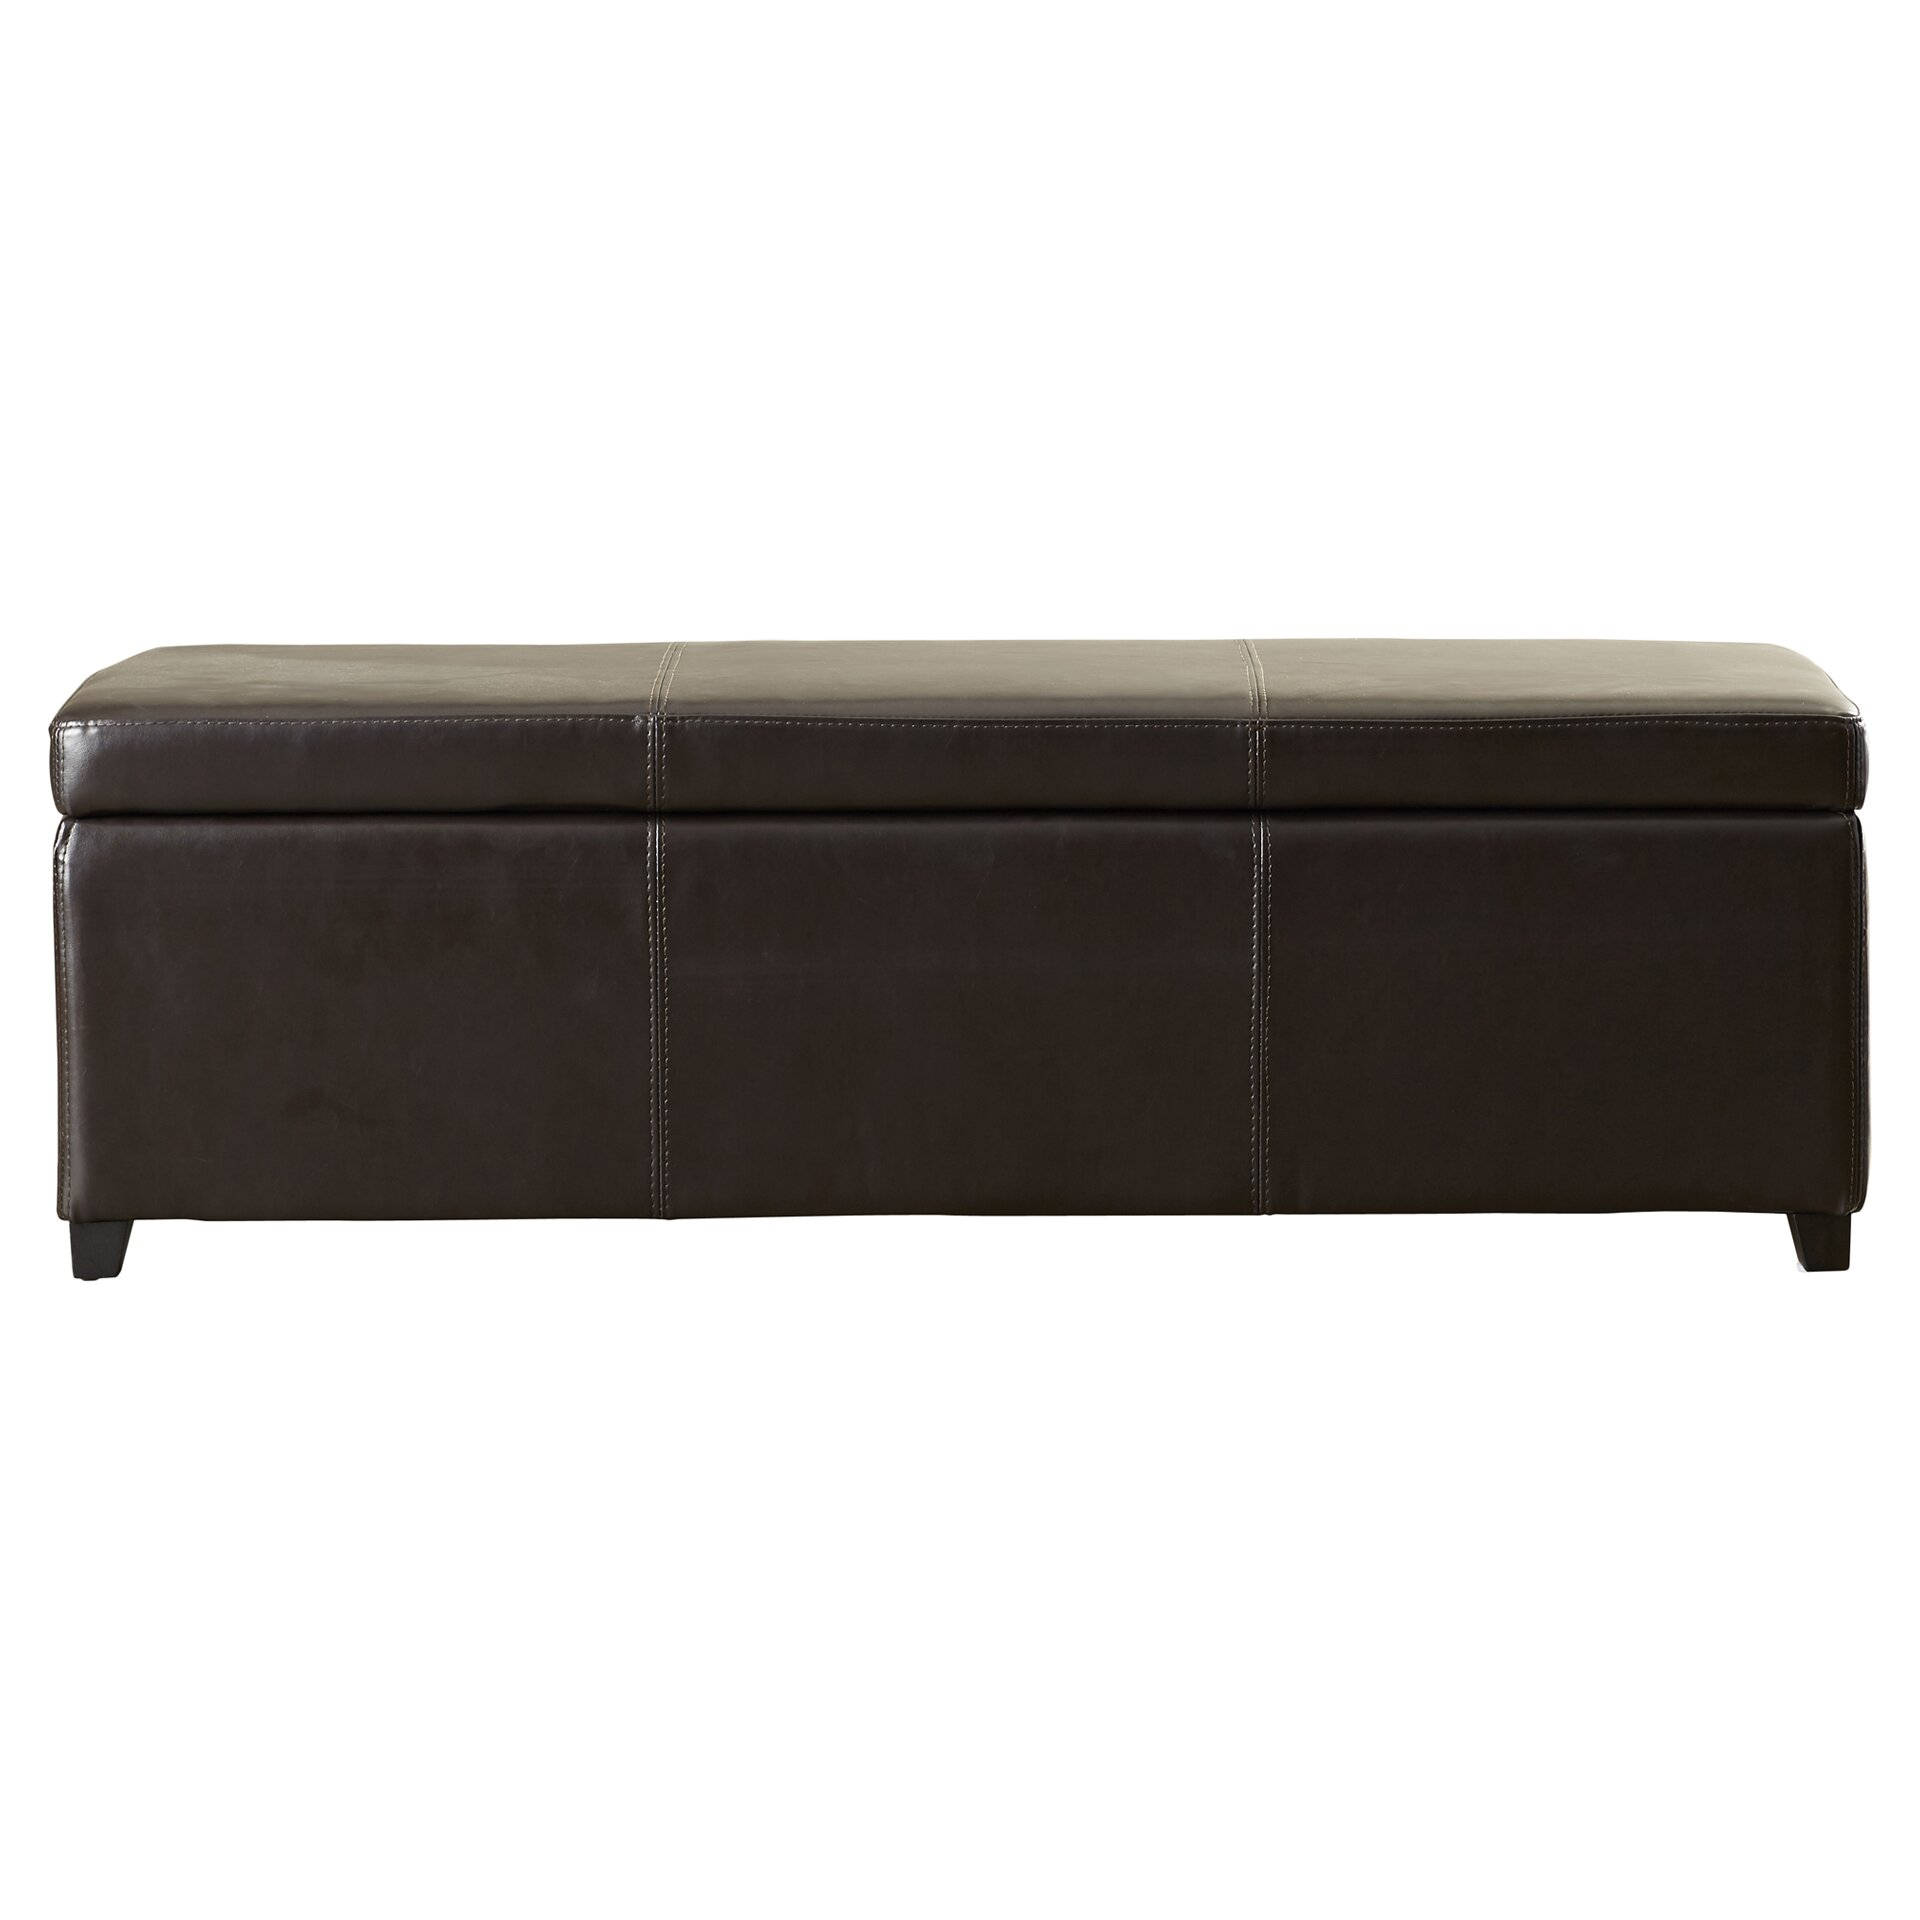 Charlton Home Ephraim Leather Storage Ottoman Bench